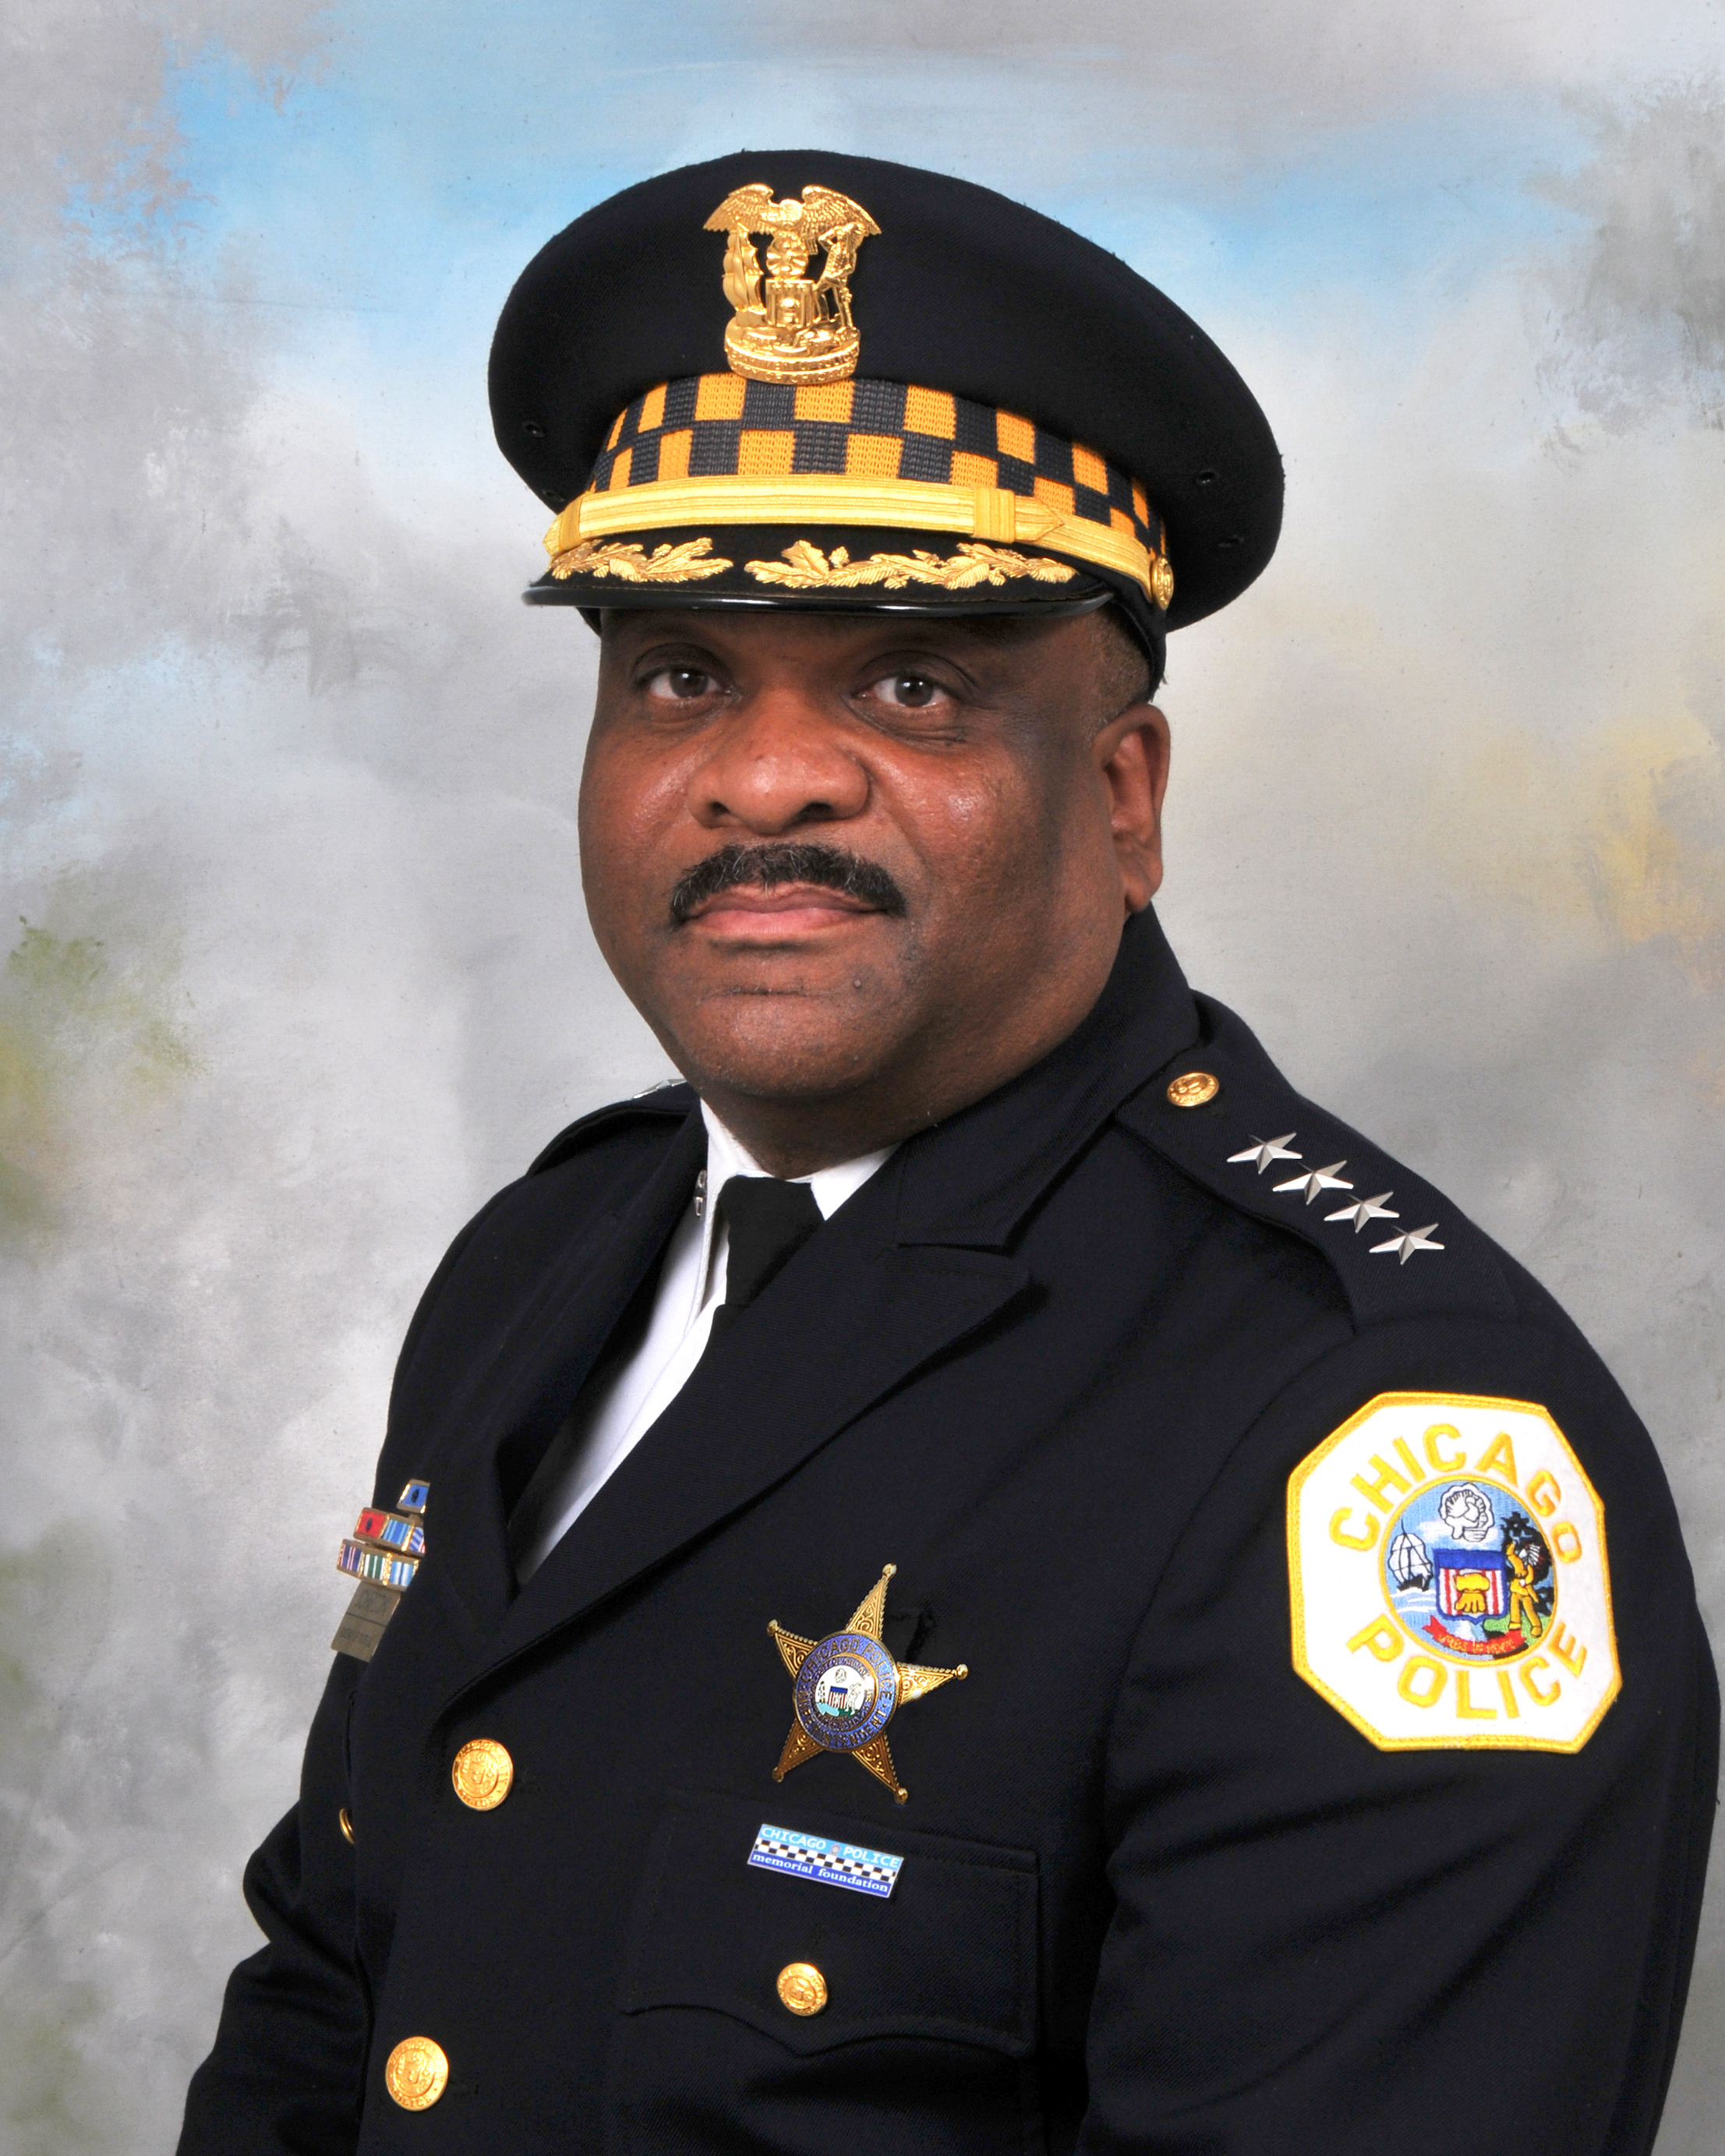 Superintendent of Police Eddie T. Johnson